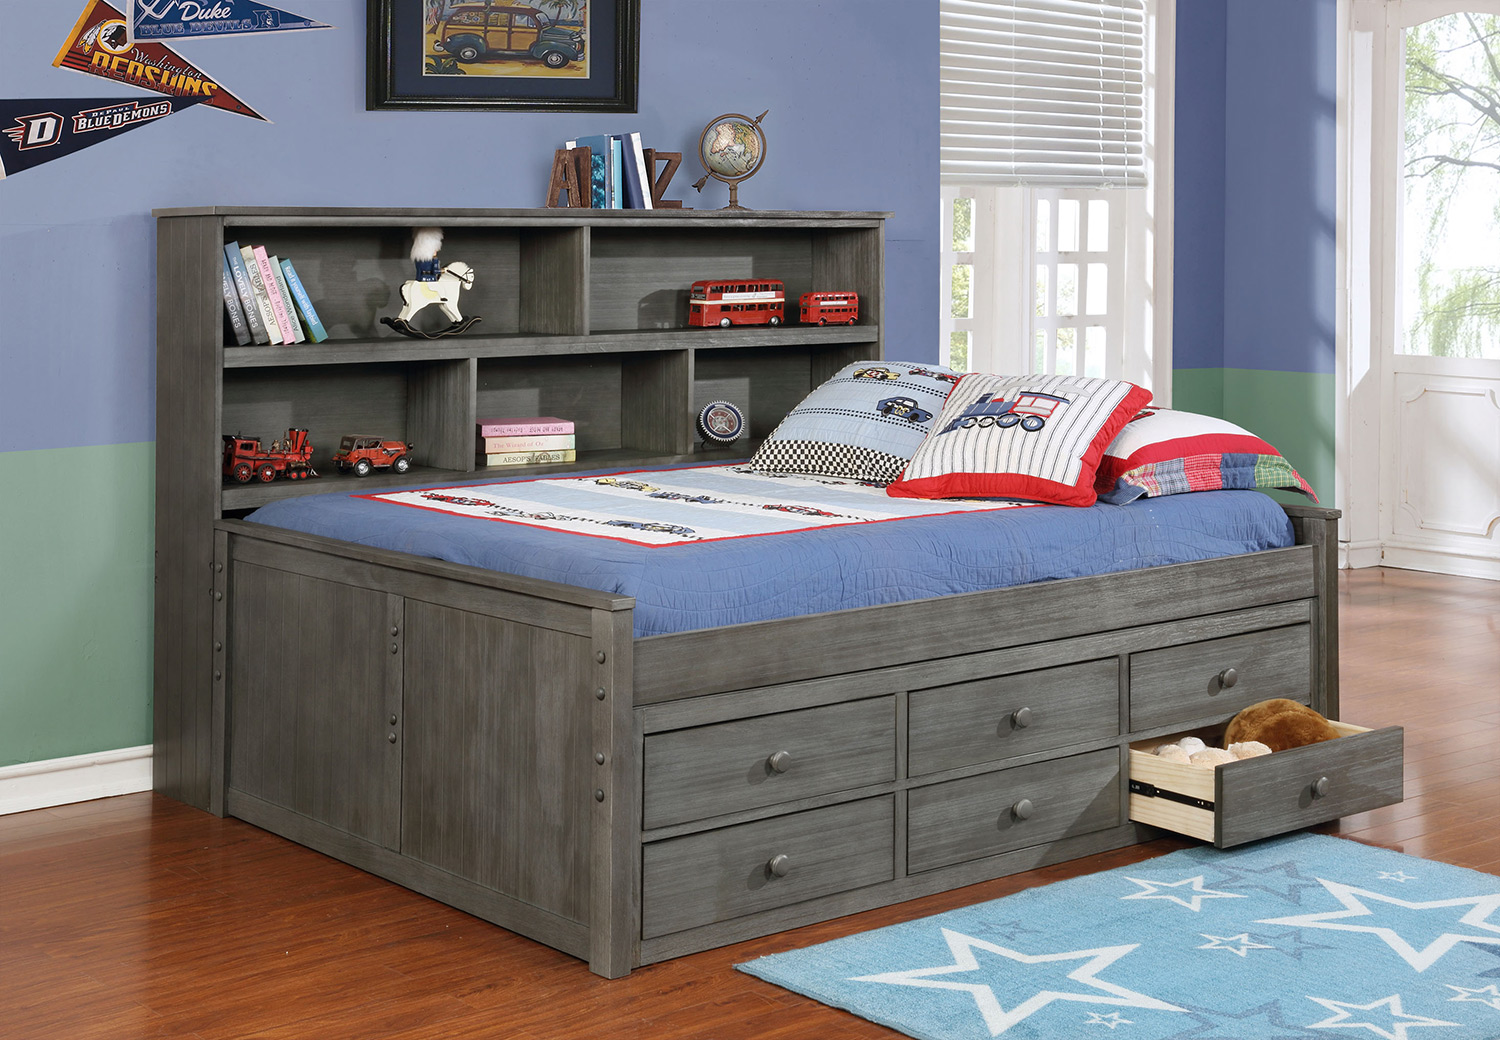 Stunning kids beds extraordinary kid bed with storage bunk beds for kids gpifrun